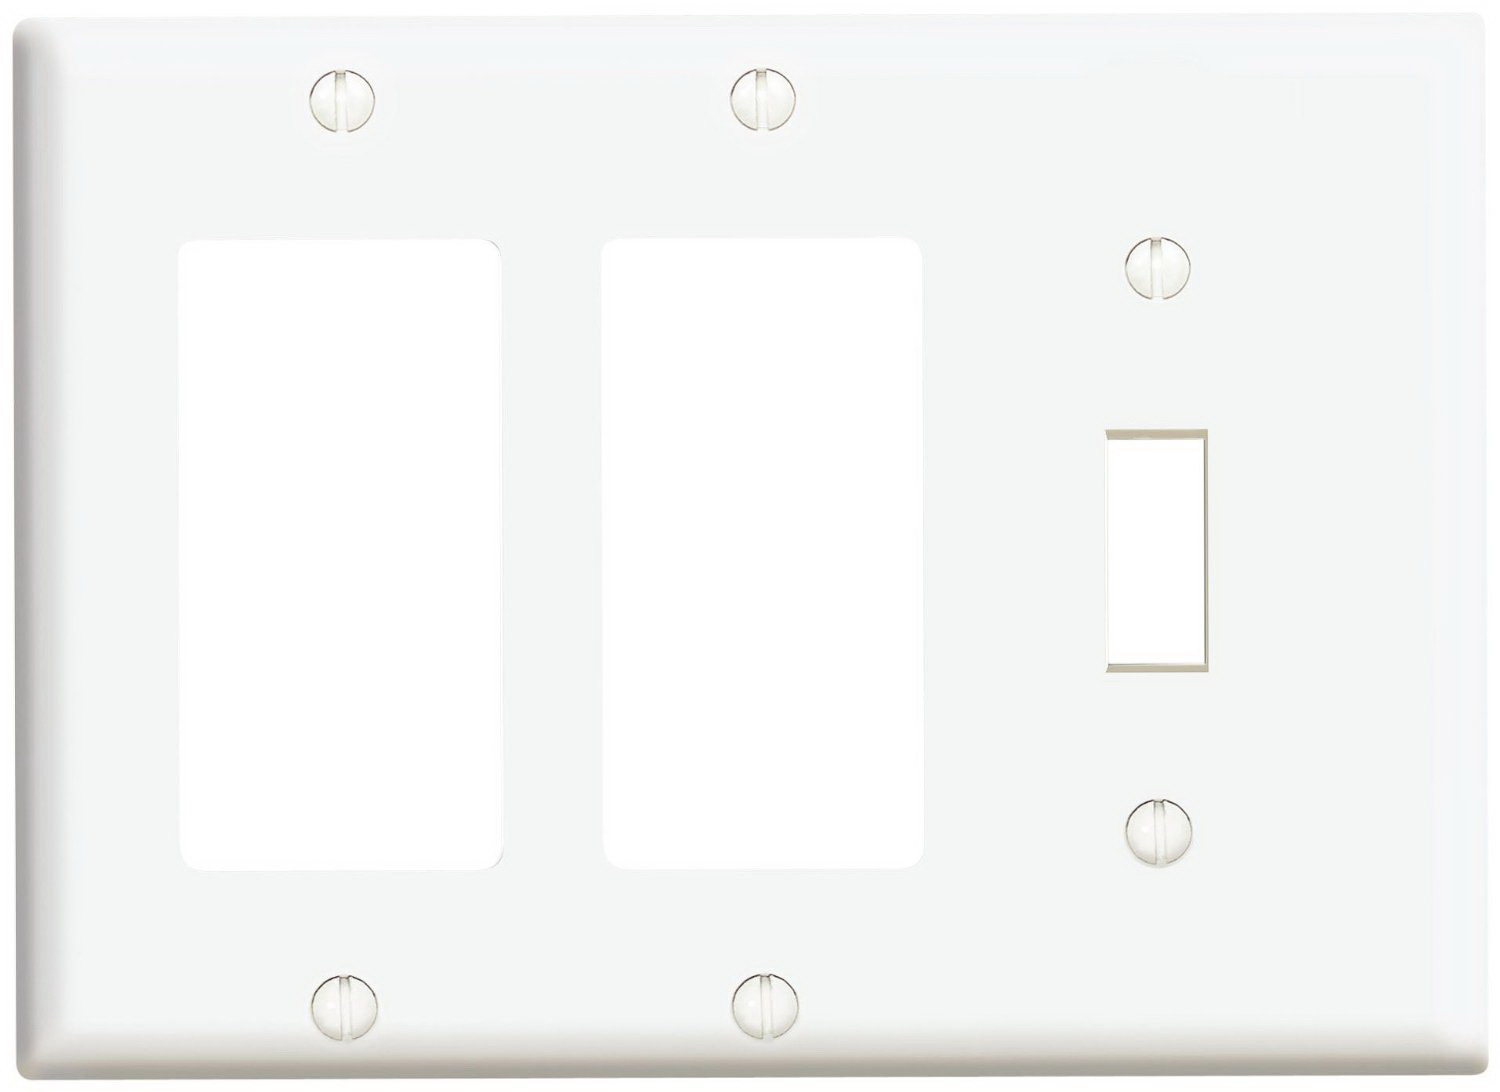 Leviton 003-80431-00W 1-Toggle 2-Decora/GFCI Standard Size Wall Plate, 3 Gang, 4.5 in L X 6.38 in W 0.22 in T, White